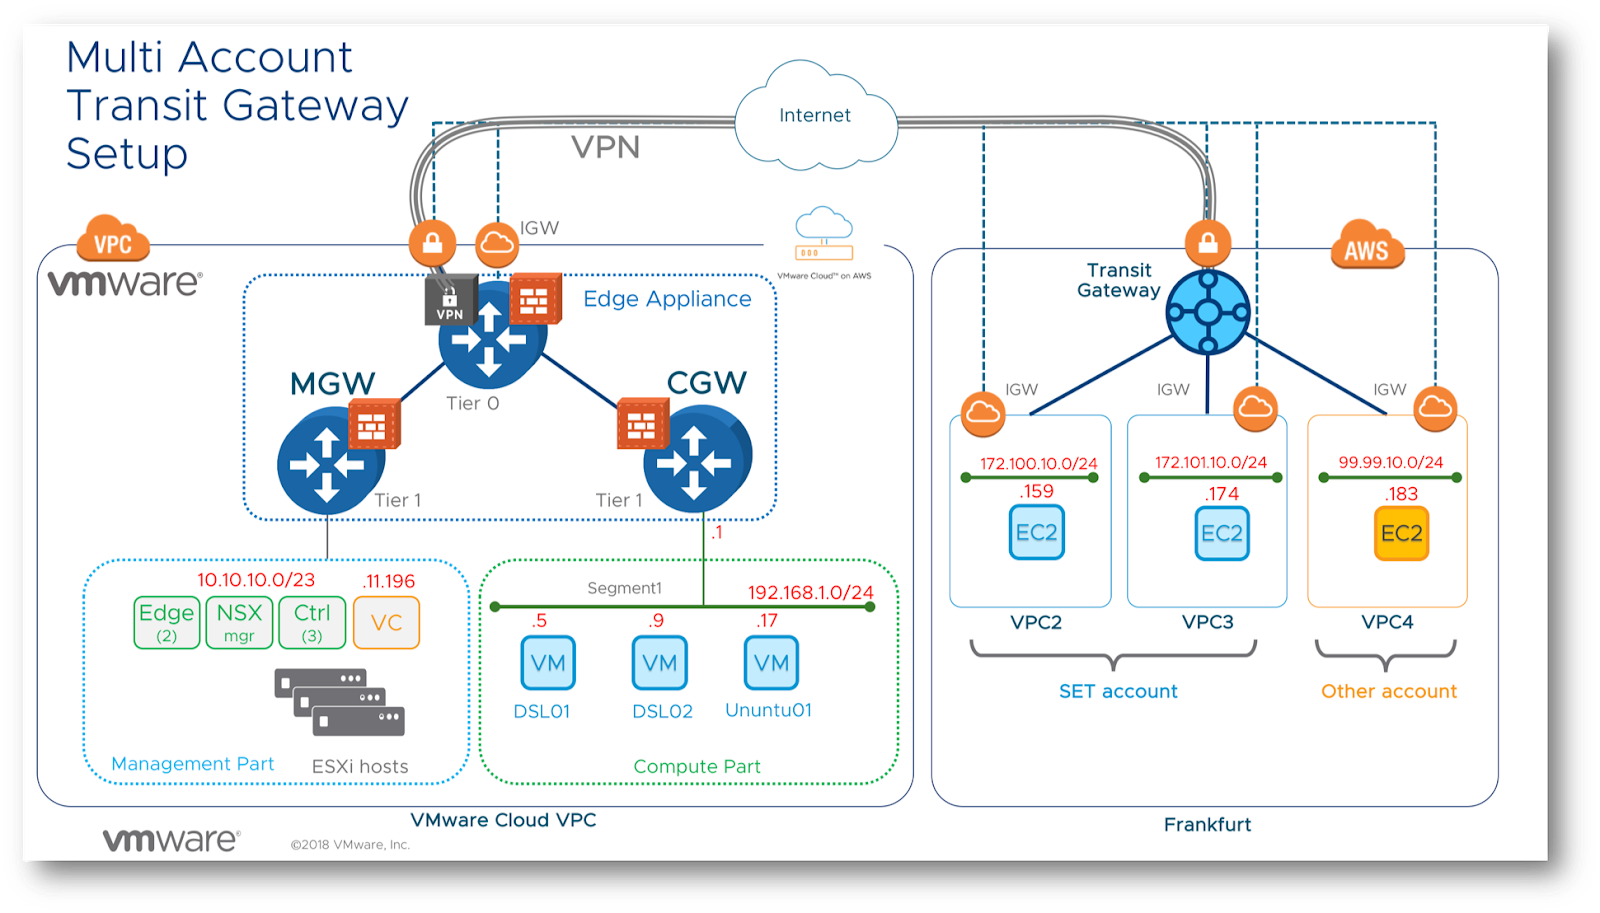 Infrastructure as Code : Build your VMware NSX Cloud lab in